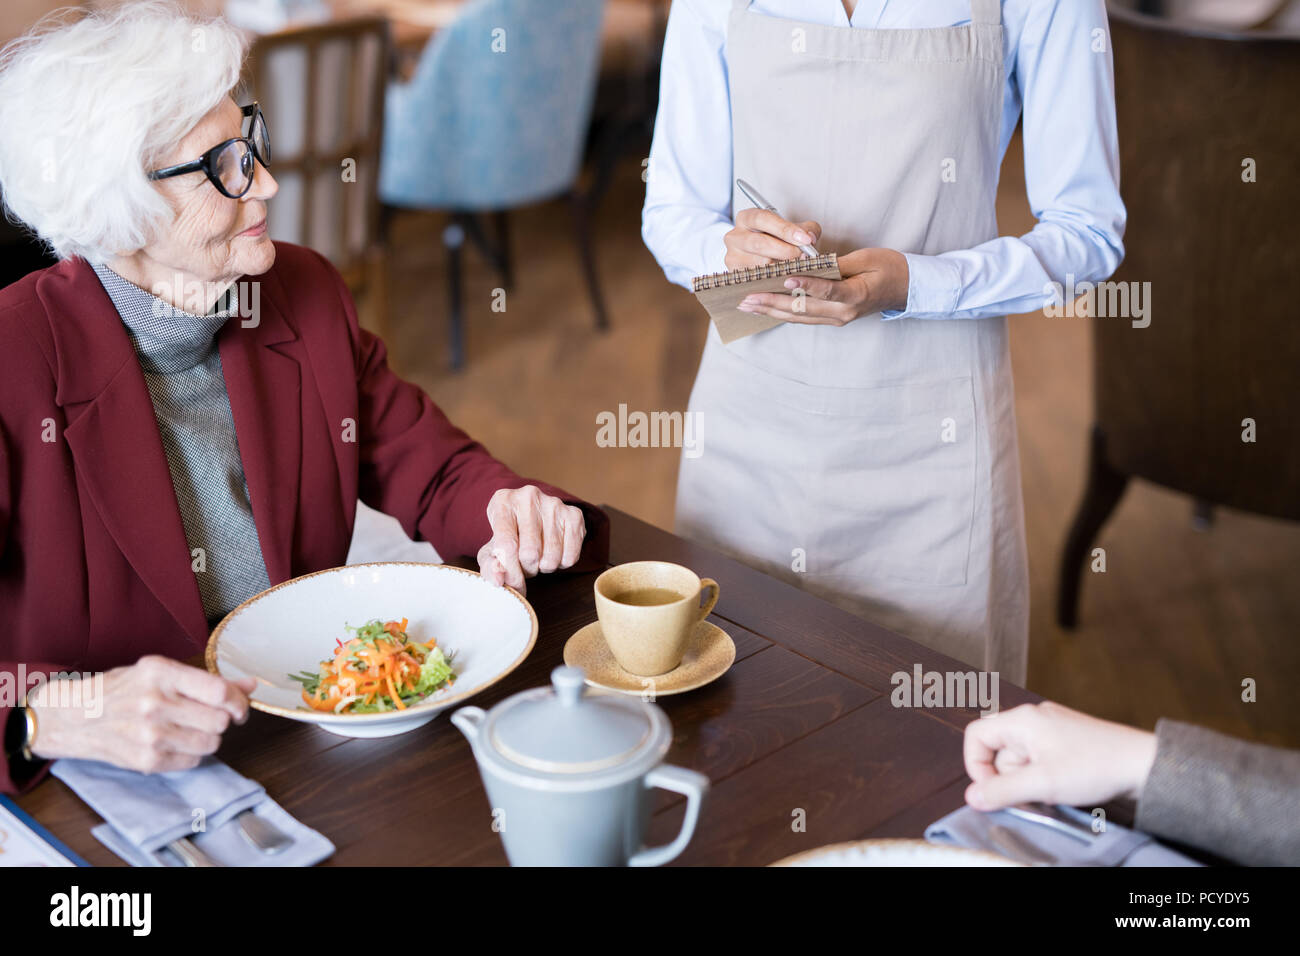 Senior woman at restaurant Photo Stock